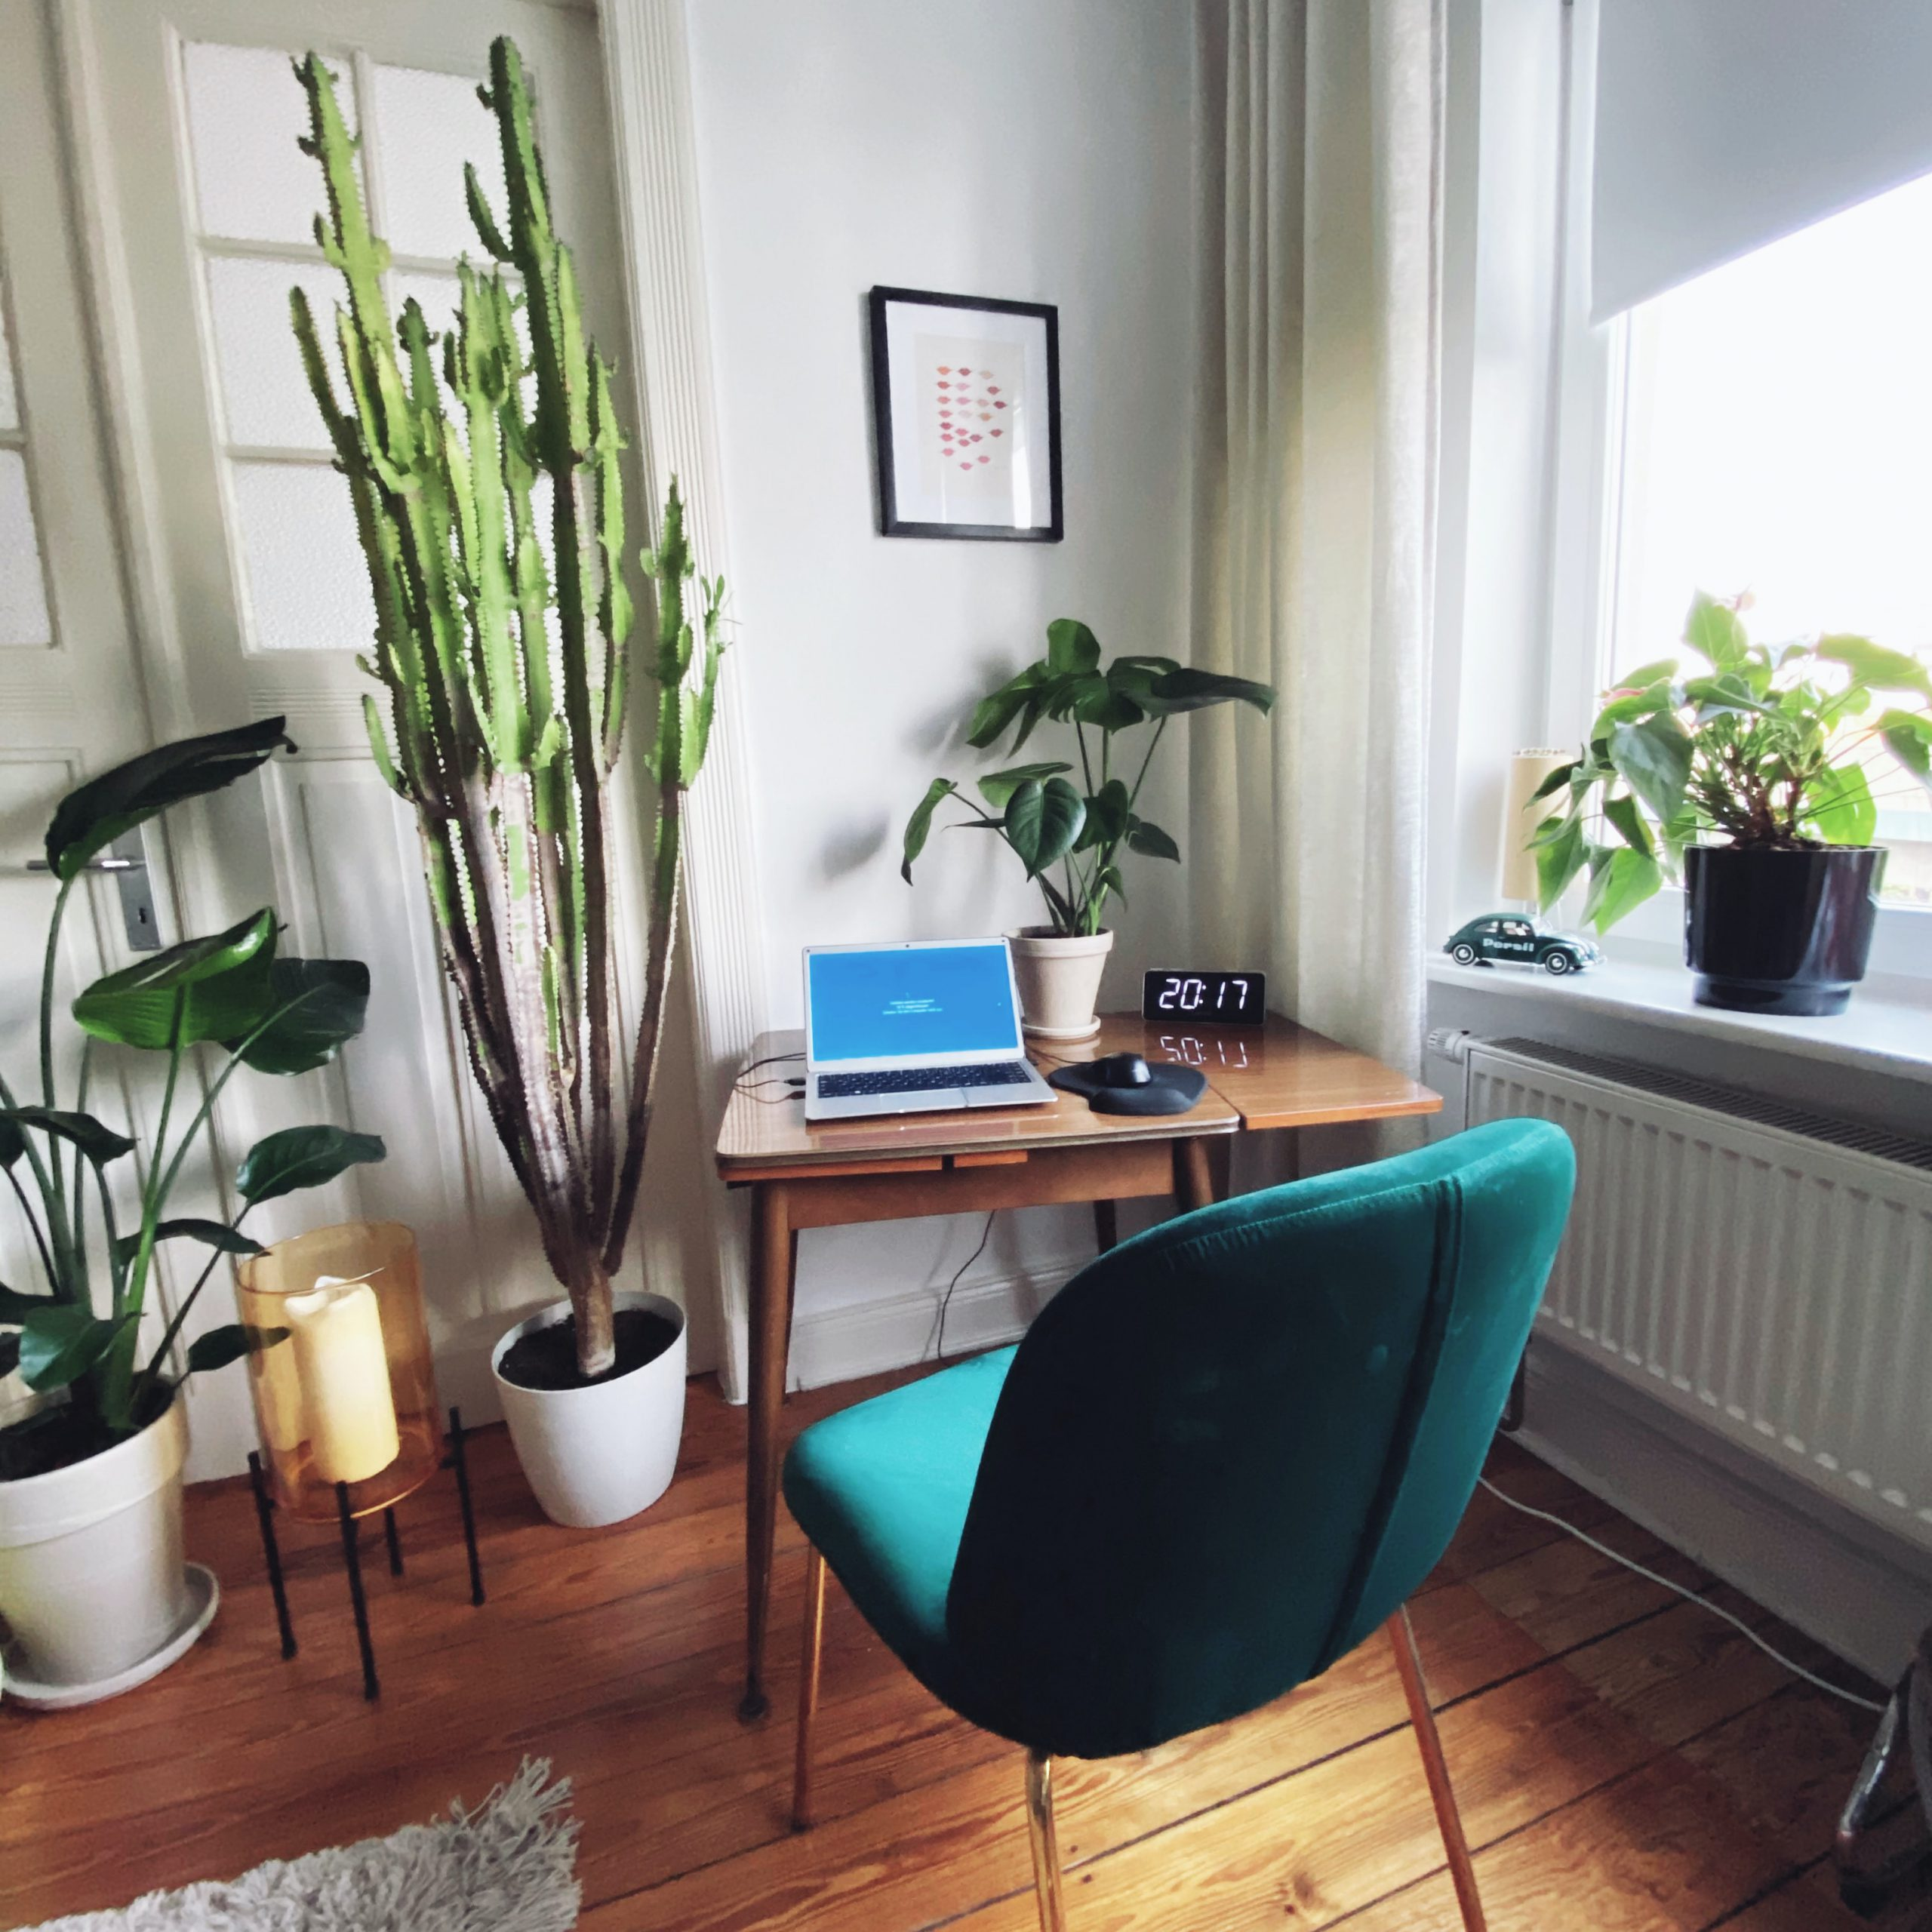 Pimp up your Homeoffice: Our ZUCKER.favorites for the perfect workplace